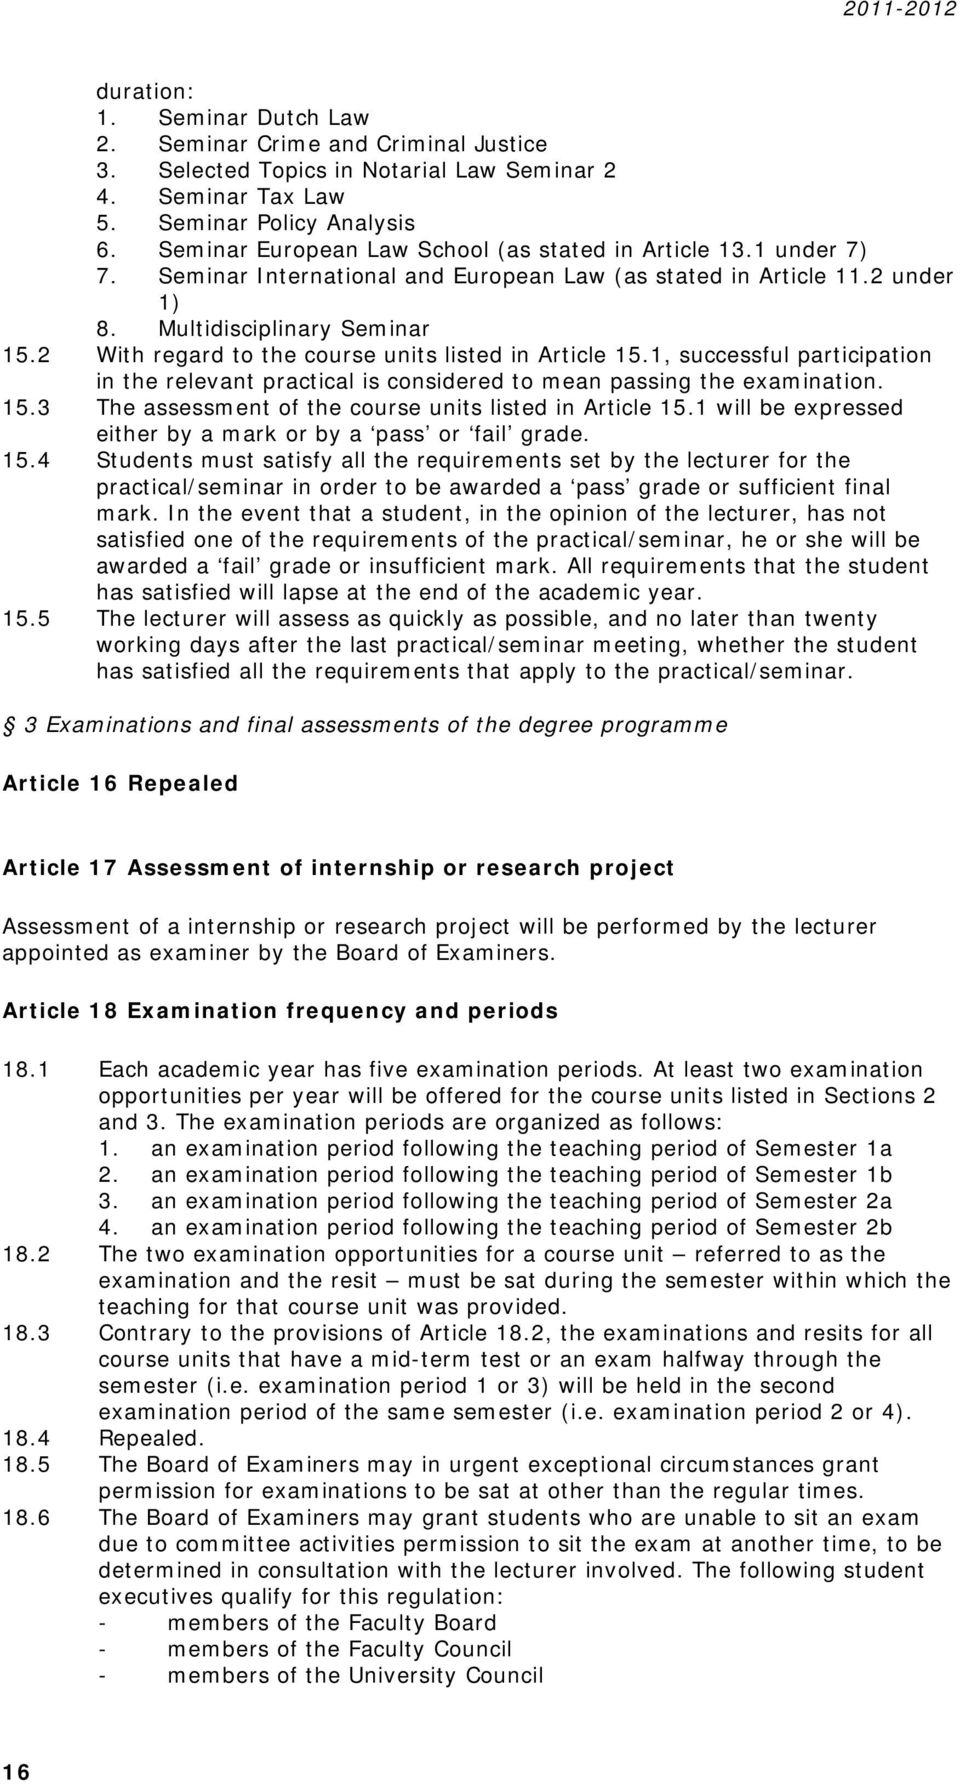 2 With regard to the course units listed in Article 15.1, successful participation in the relevant practical is considered to mean passing the examination. 15.3 The assessment of the course units listed in Article 15.